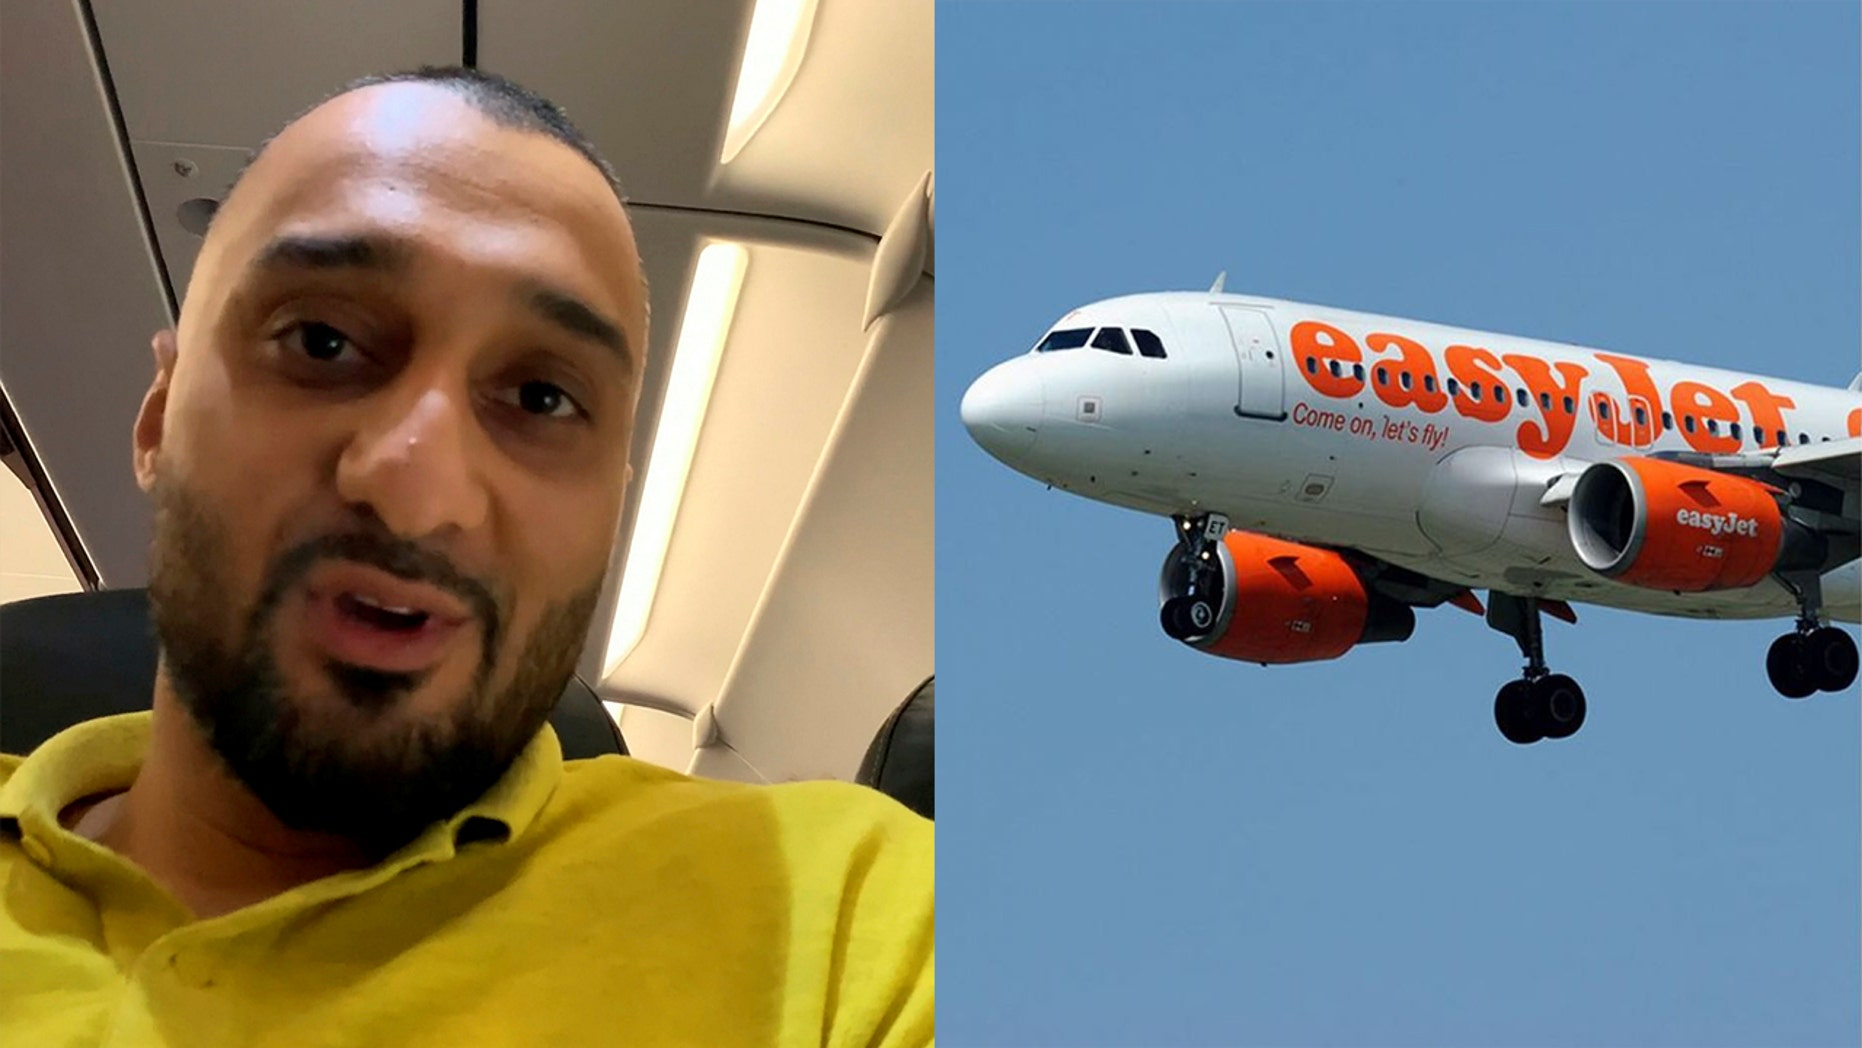 Adil Kayani says that the EasyJet's apologies and offer of $660 are not sufficient amends for the upsetting ordeal.